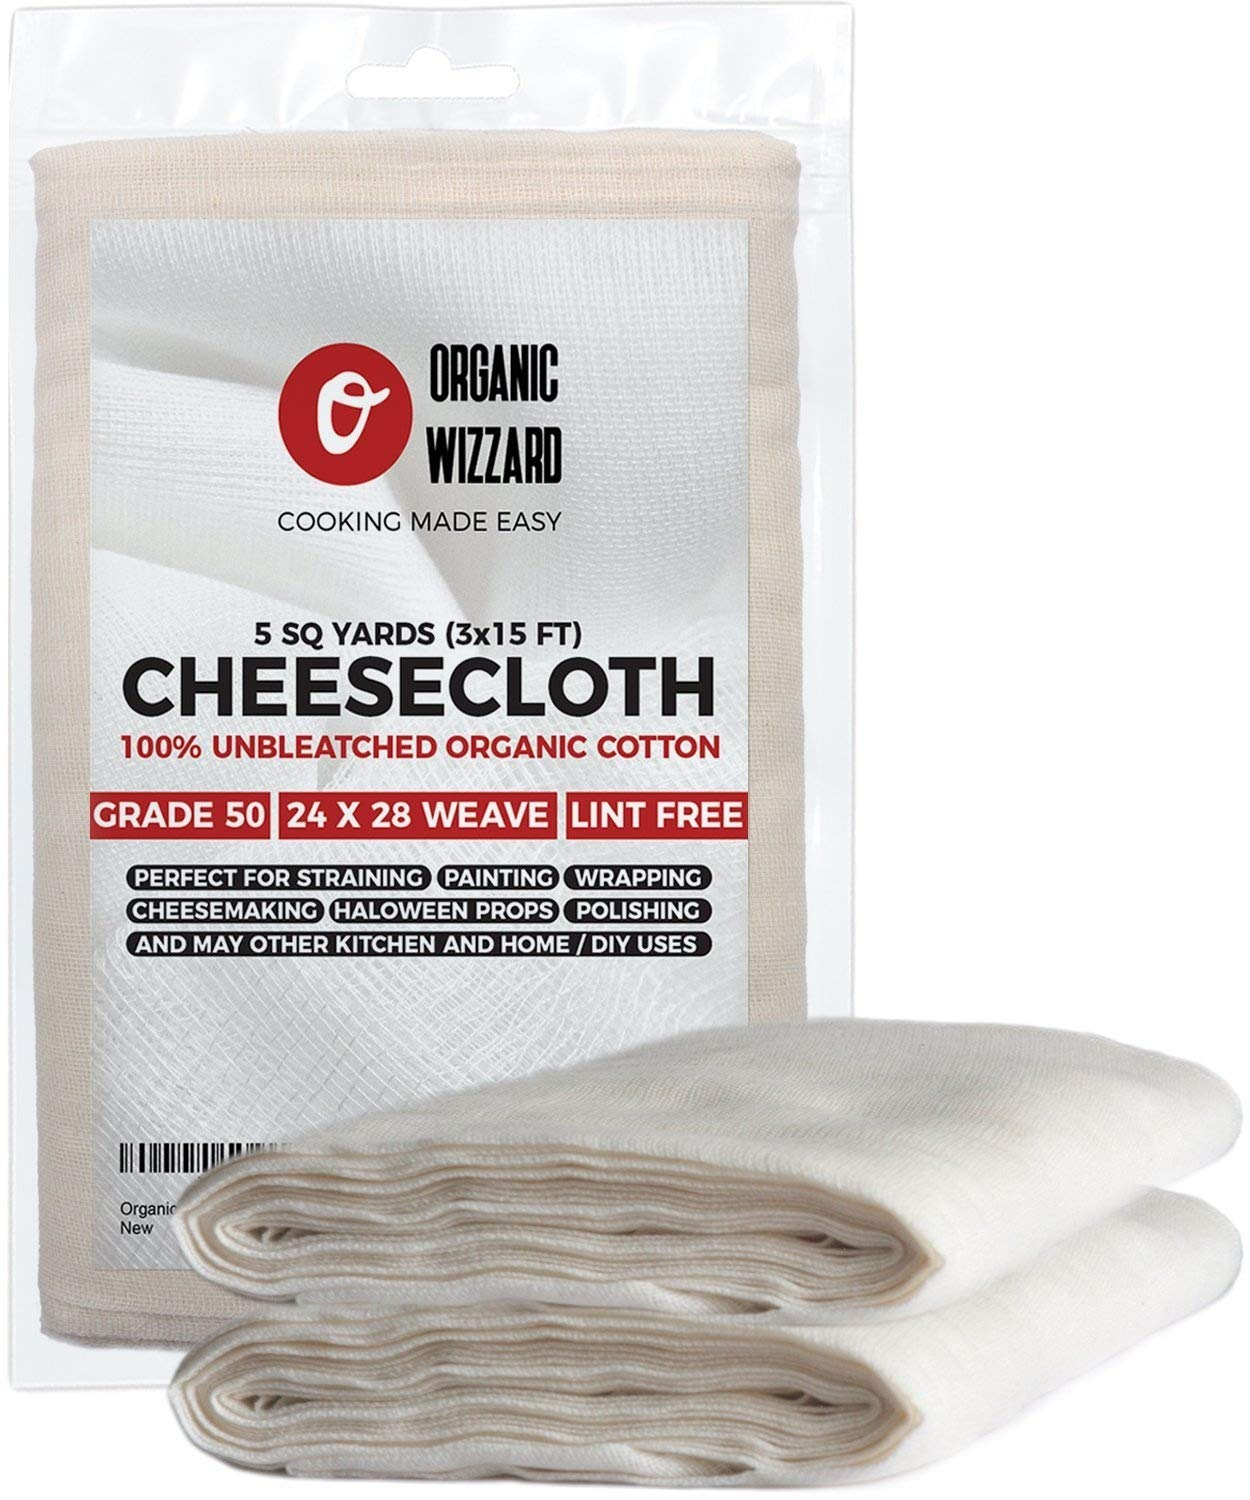 Cheesecloth - Organic Unbleached Cotton Fabric - Grade 90 Ultra Fine Mesh. 45 Sq Feet (5 yards) of 100% Natural, Washable and Reusable Food Filter/Strainer 4335484454